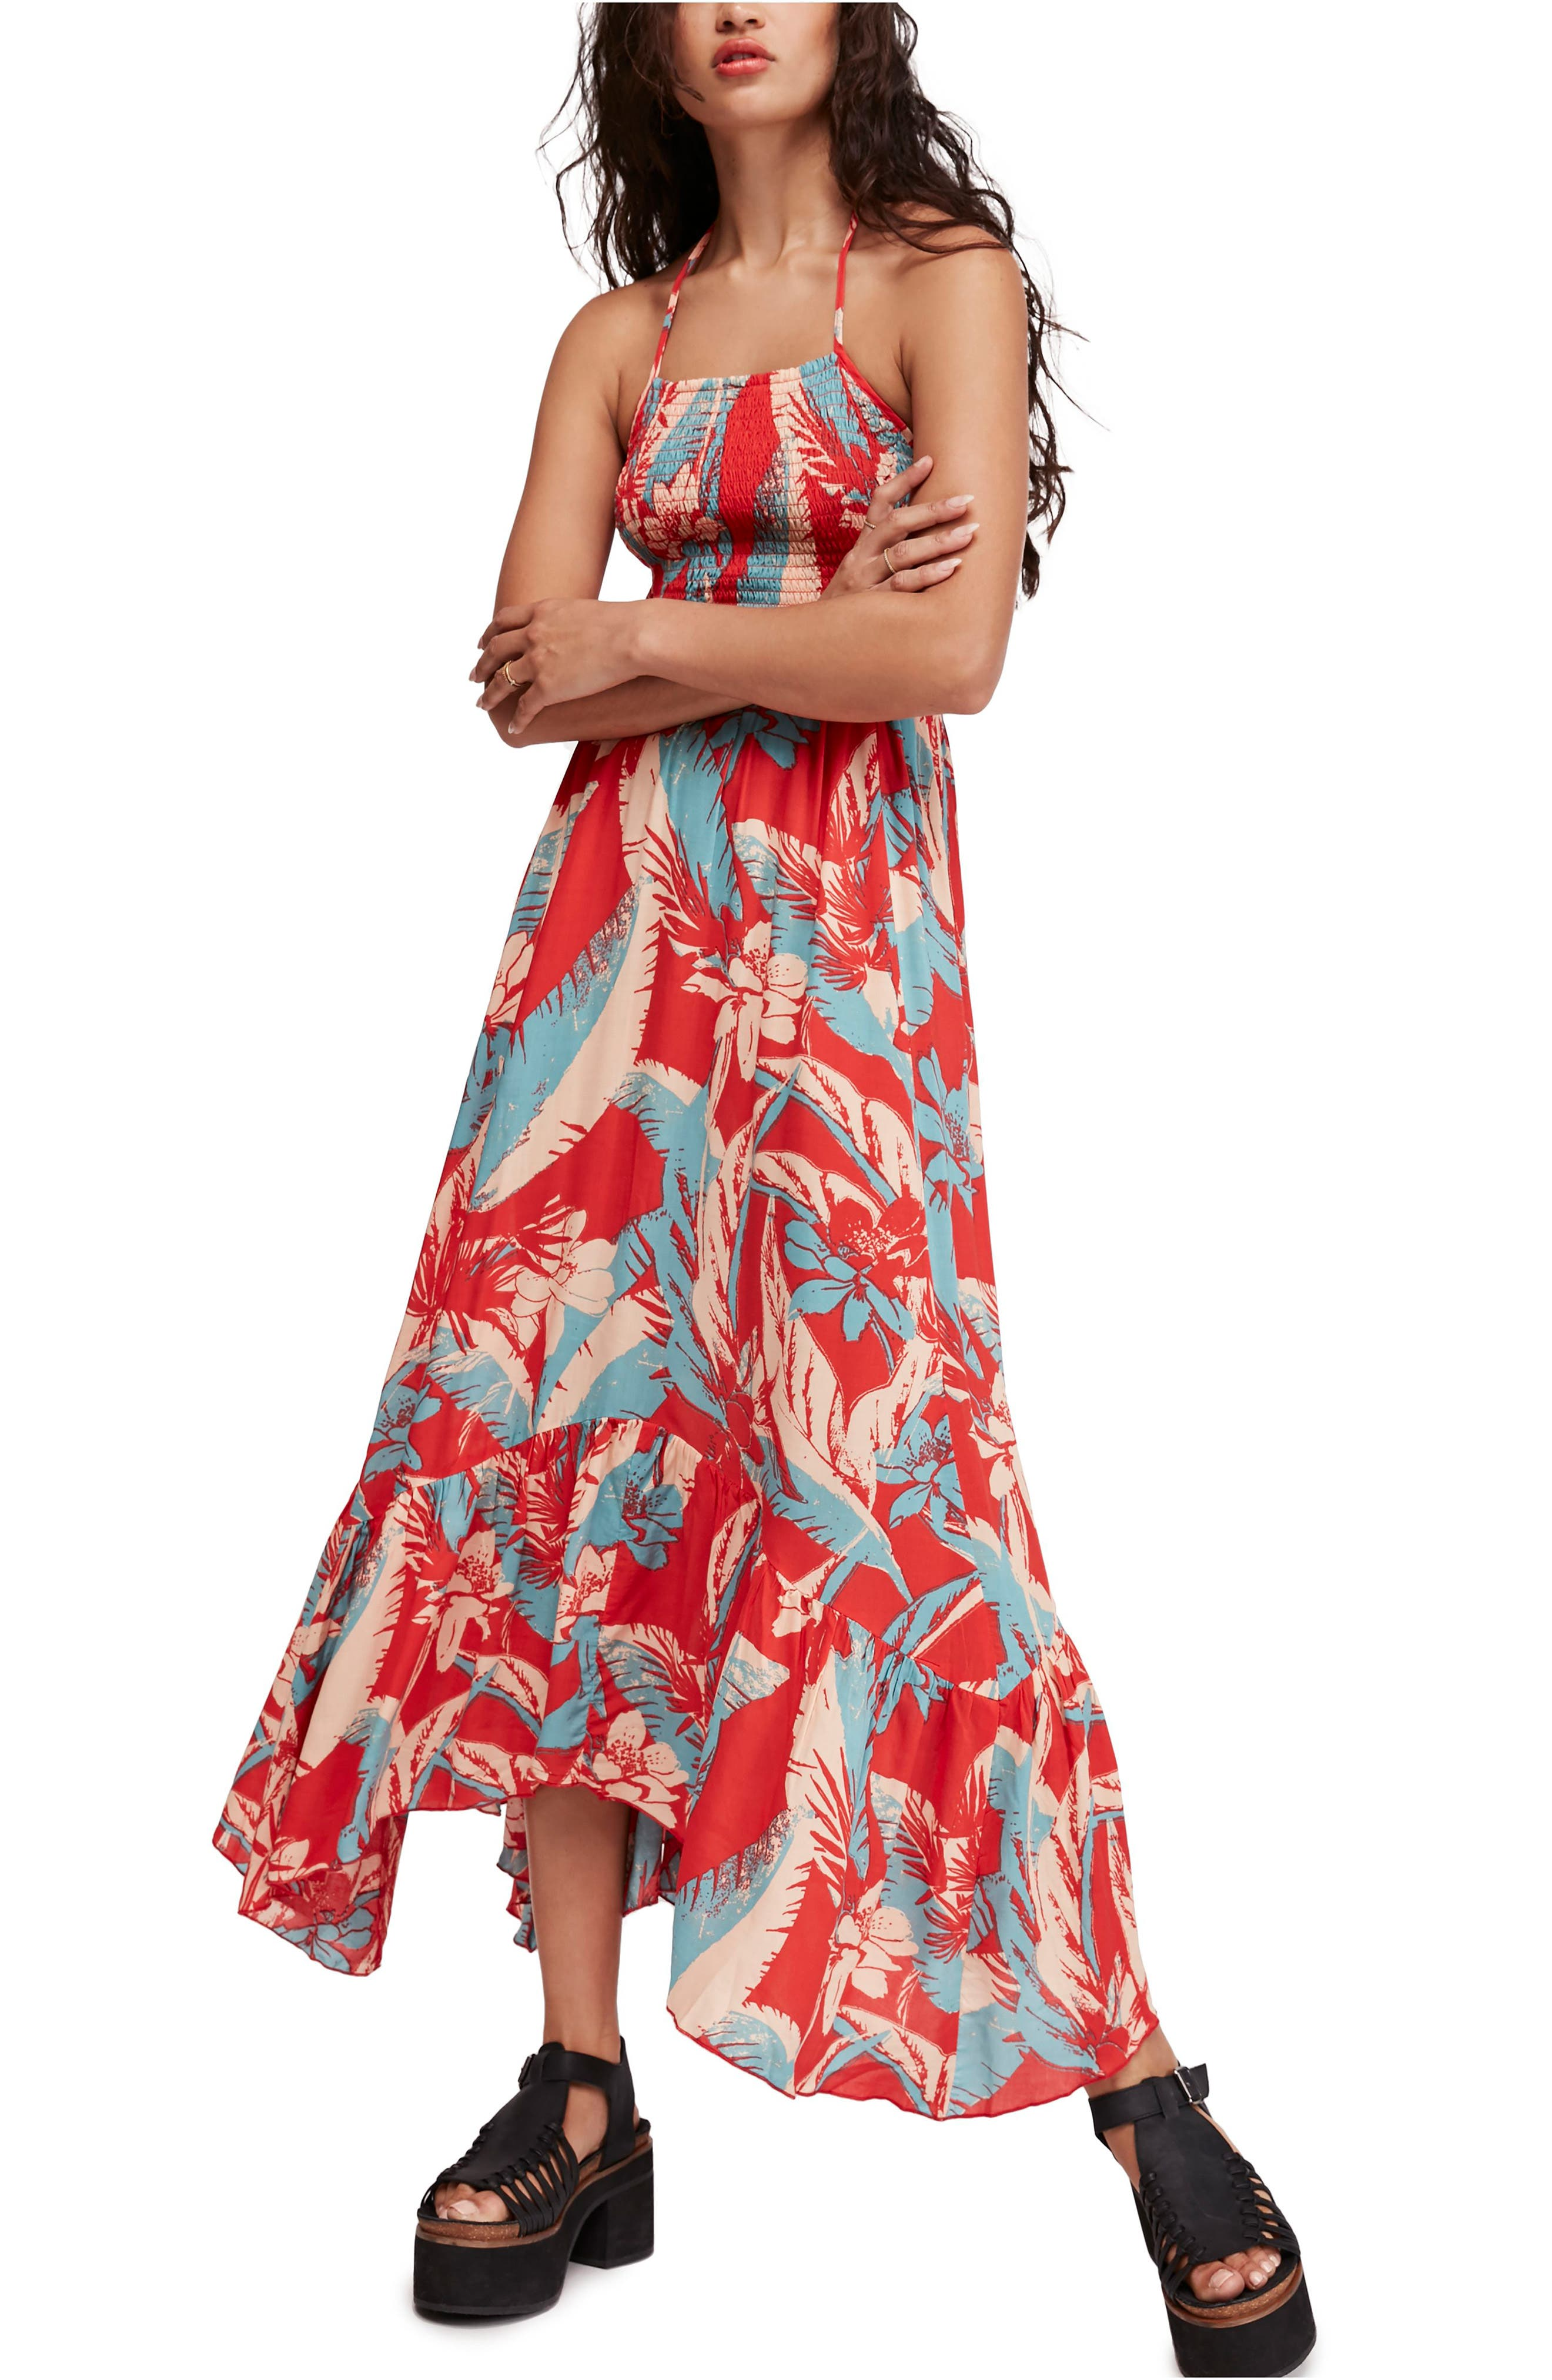 Free People Heat Wave Floral Print High/low Dress, Red